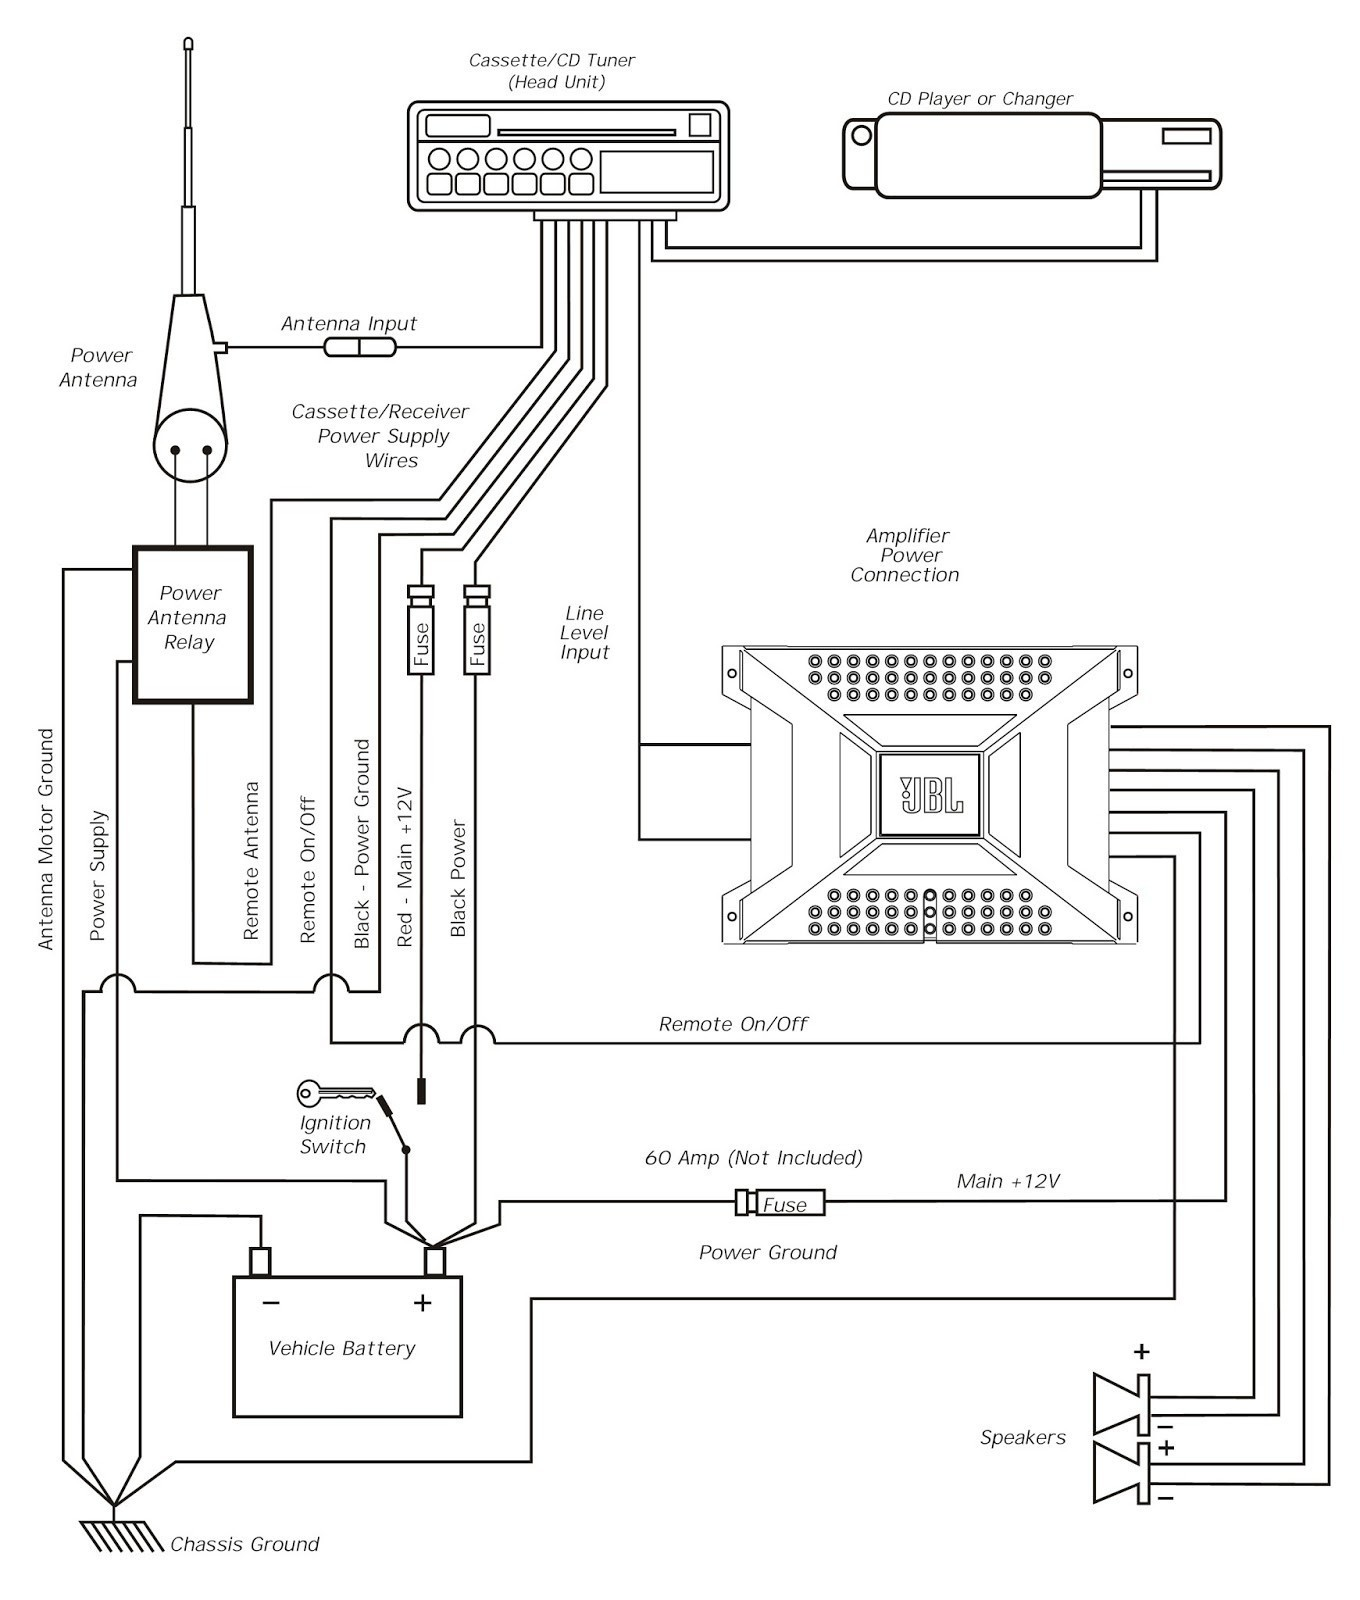 Dual Battery Wiring Diagram Car Audio Pioneer Eq 6500 Wiring Diagram Another Blog About Wiring Diagram • Of Dual Battery Wiring Diagram Car Audio Prado 150 Dual Battery Wiring Diagram Shahsramblings